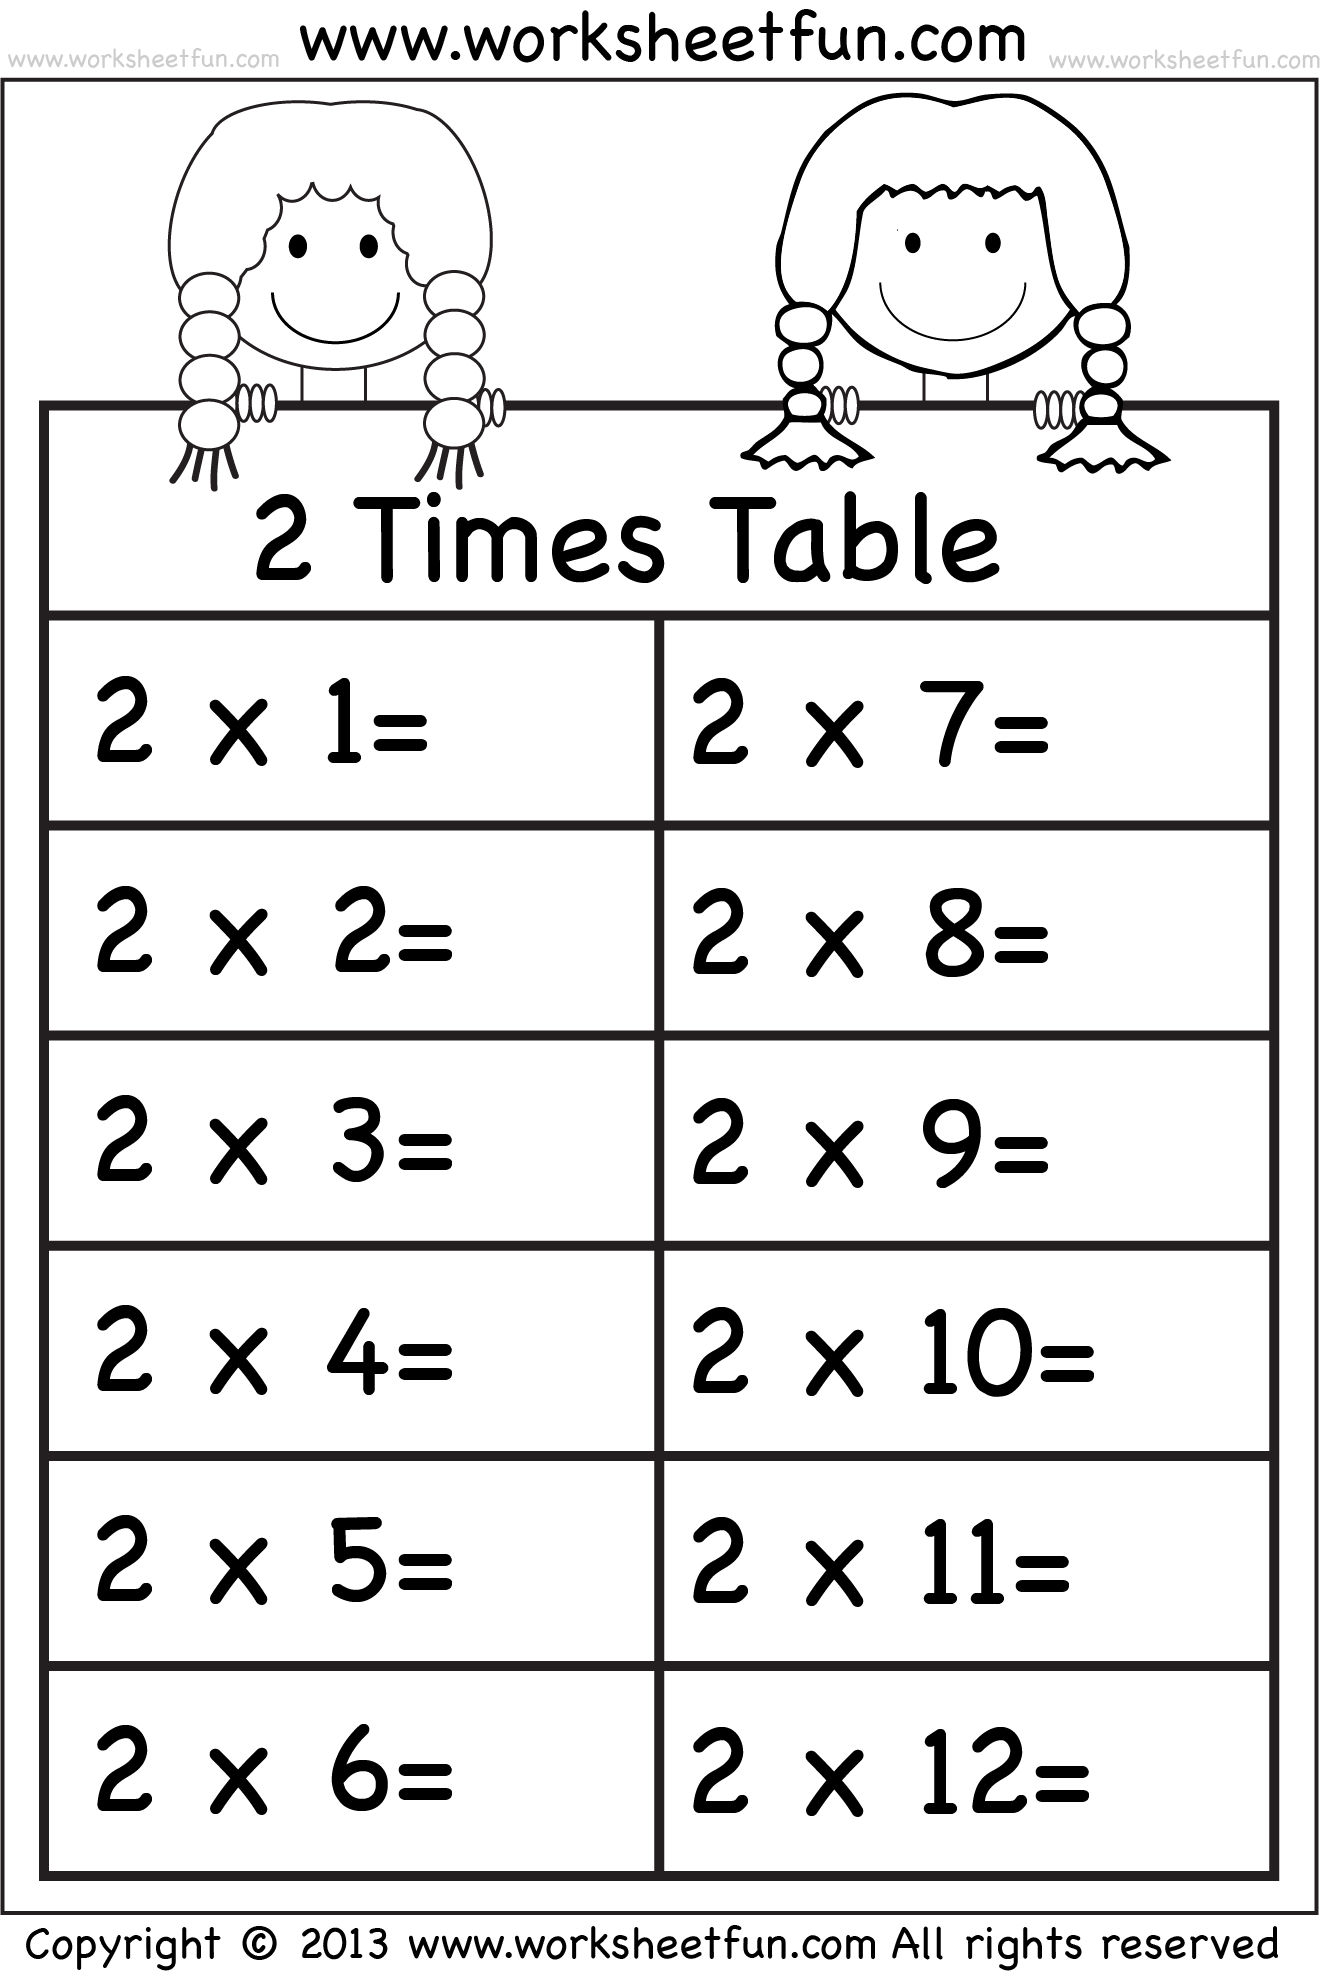 Times Tables Worksheets 2 3 4 5 6 7 8 9 10 11 And 12 Eleven Worksheets Free